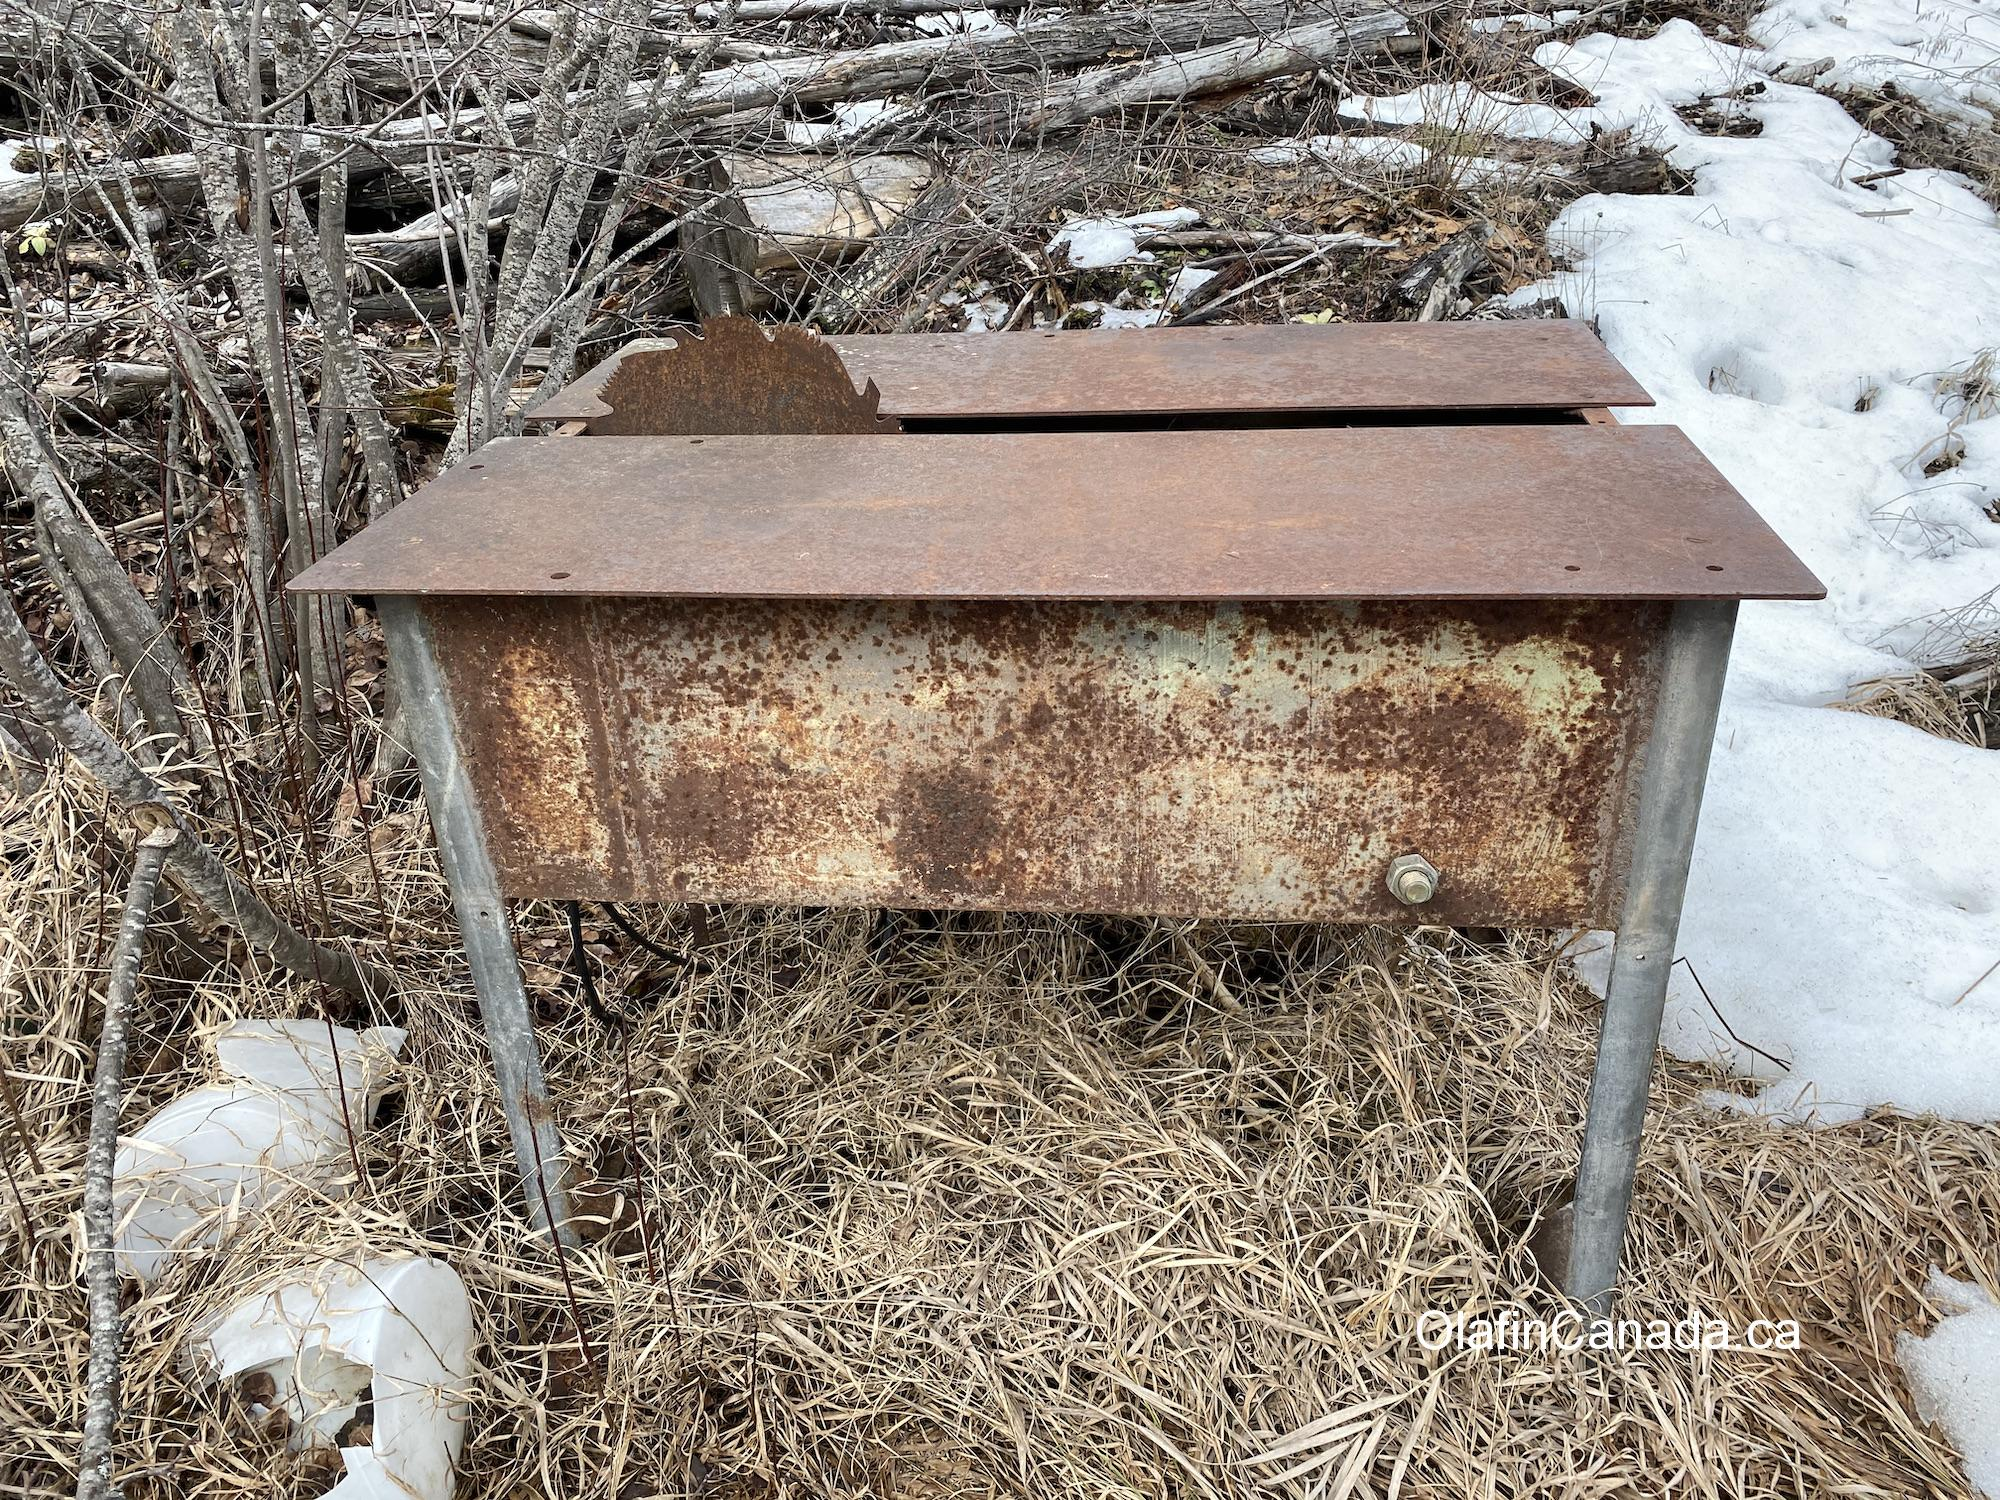 Abandoned saw table near cabin on Dunn Lake Road, close to Clearwater #olafincanada #britishcolumbia #discoverbc #abandonedbc #clearwater